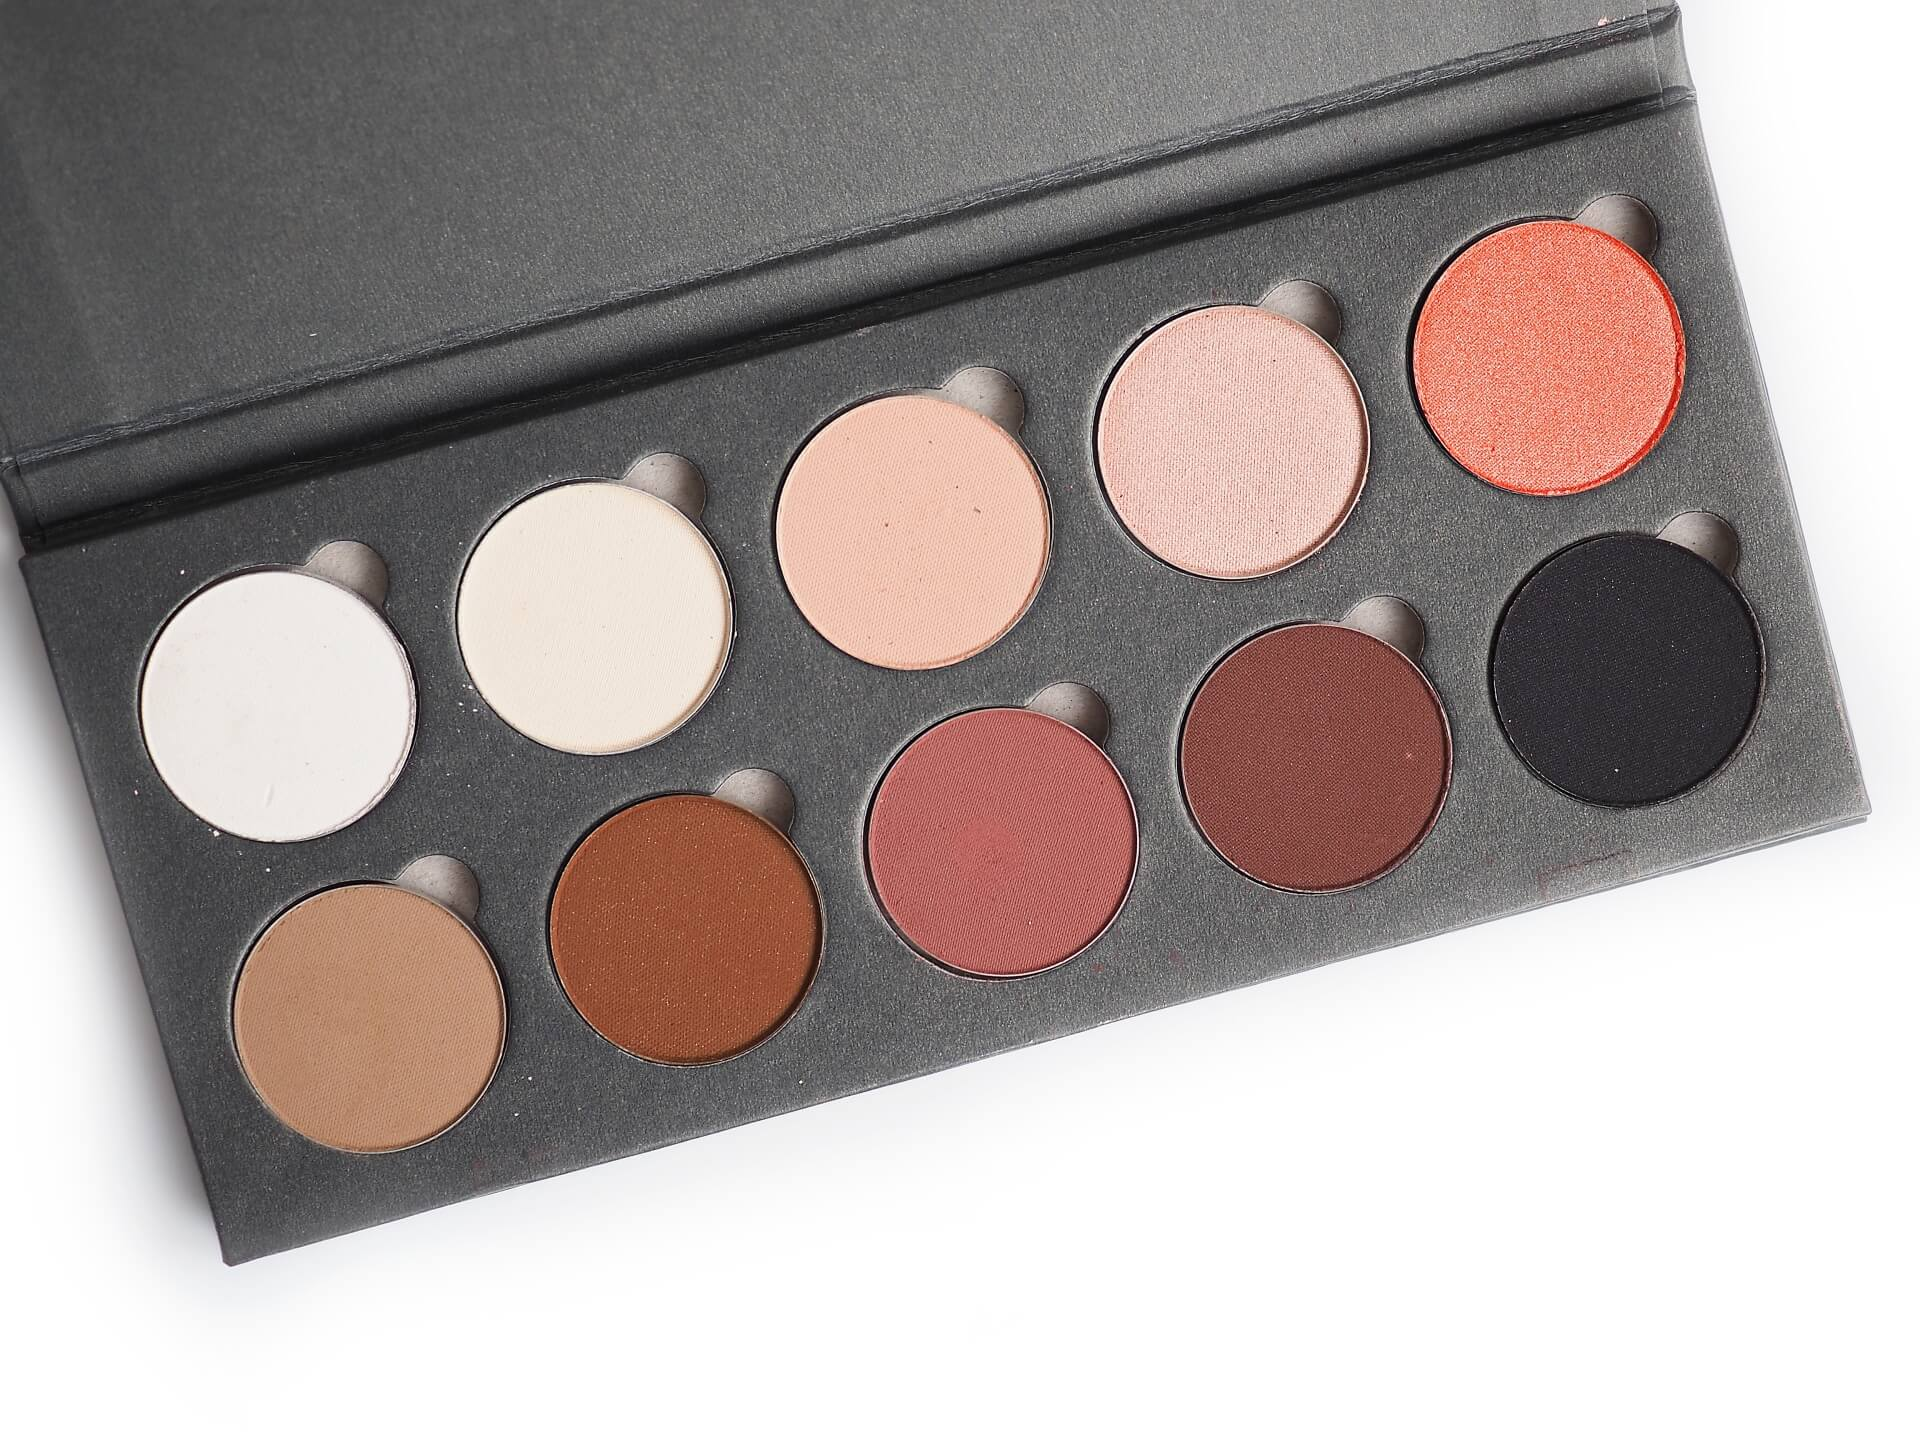 test Kobo Professional Charming Look Eyeshadow Palette